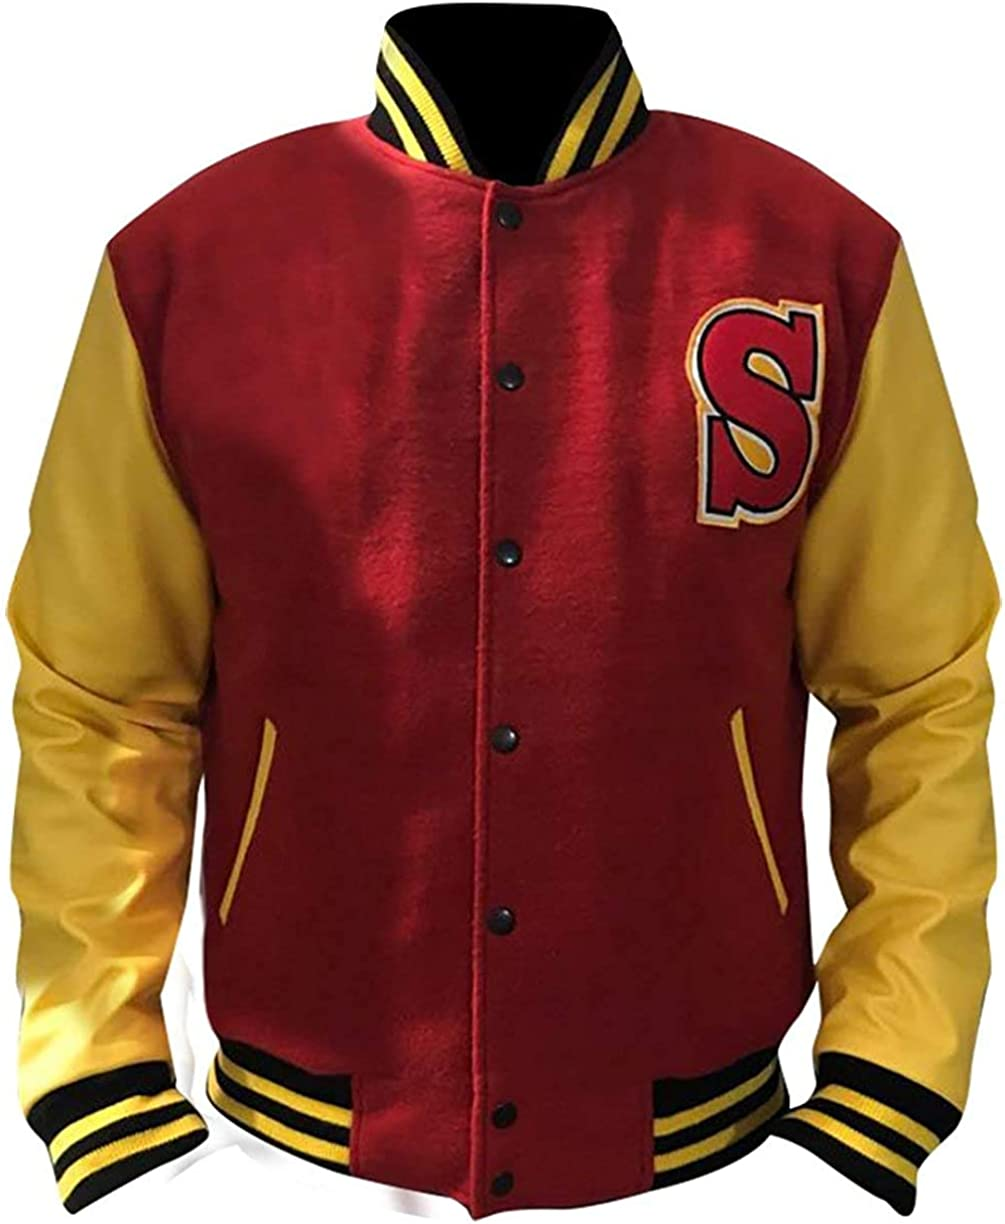 80s Windbreakers, Jackets, Coats | 90s Outerwear CHICAGO-FASHIONS Mens High School Bomber Varsity Jacket - Red & Yellow Letterman Wool Jacket  AT vintagedancer.com